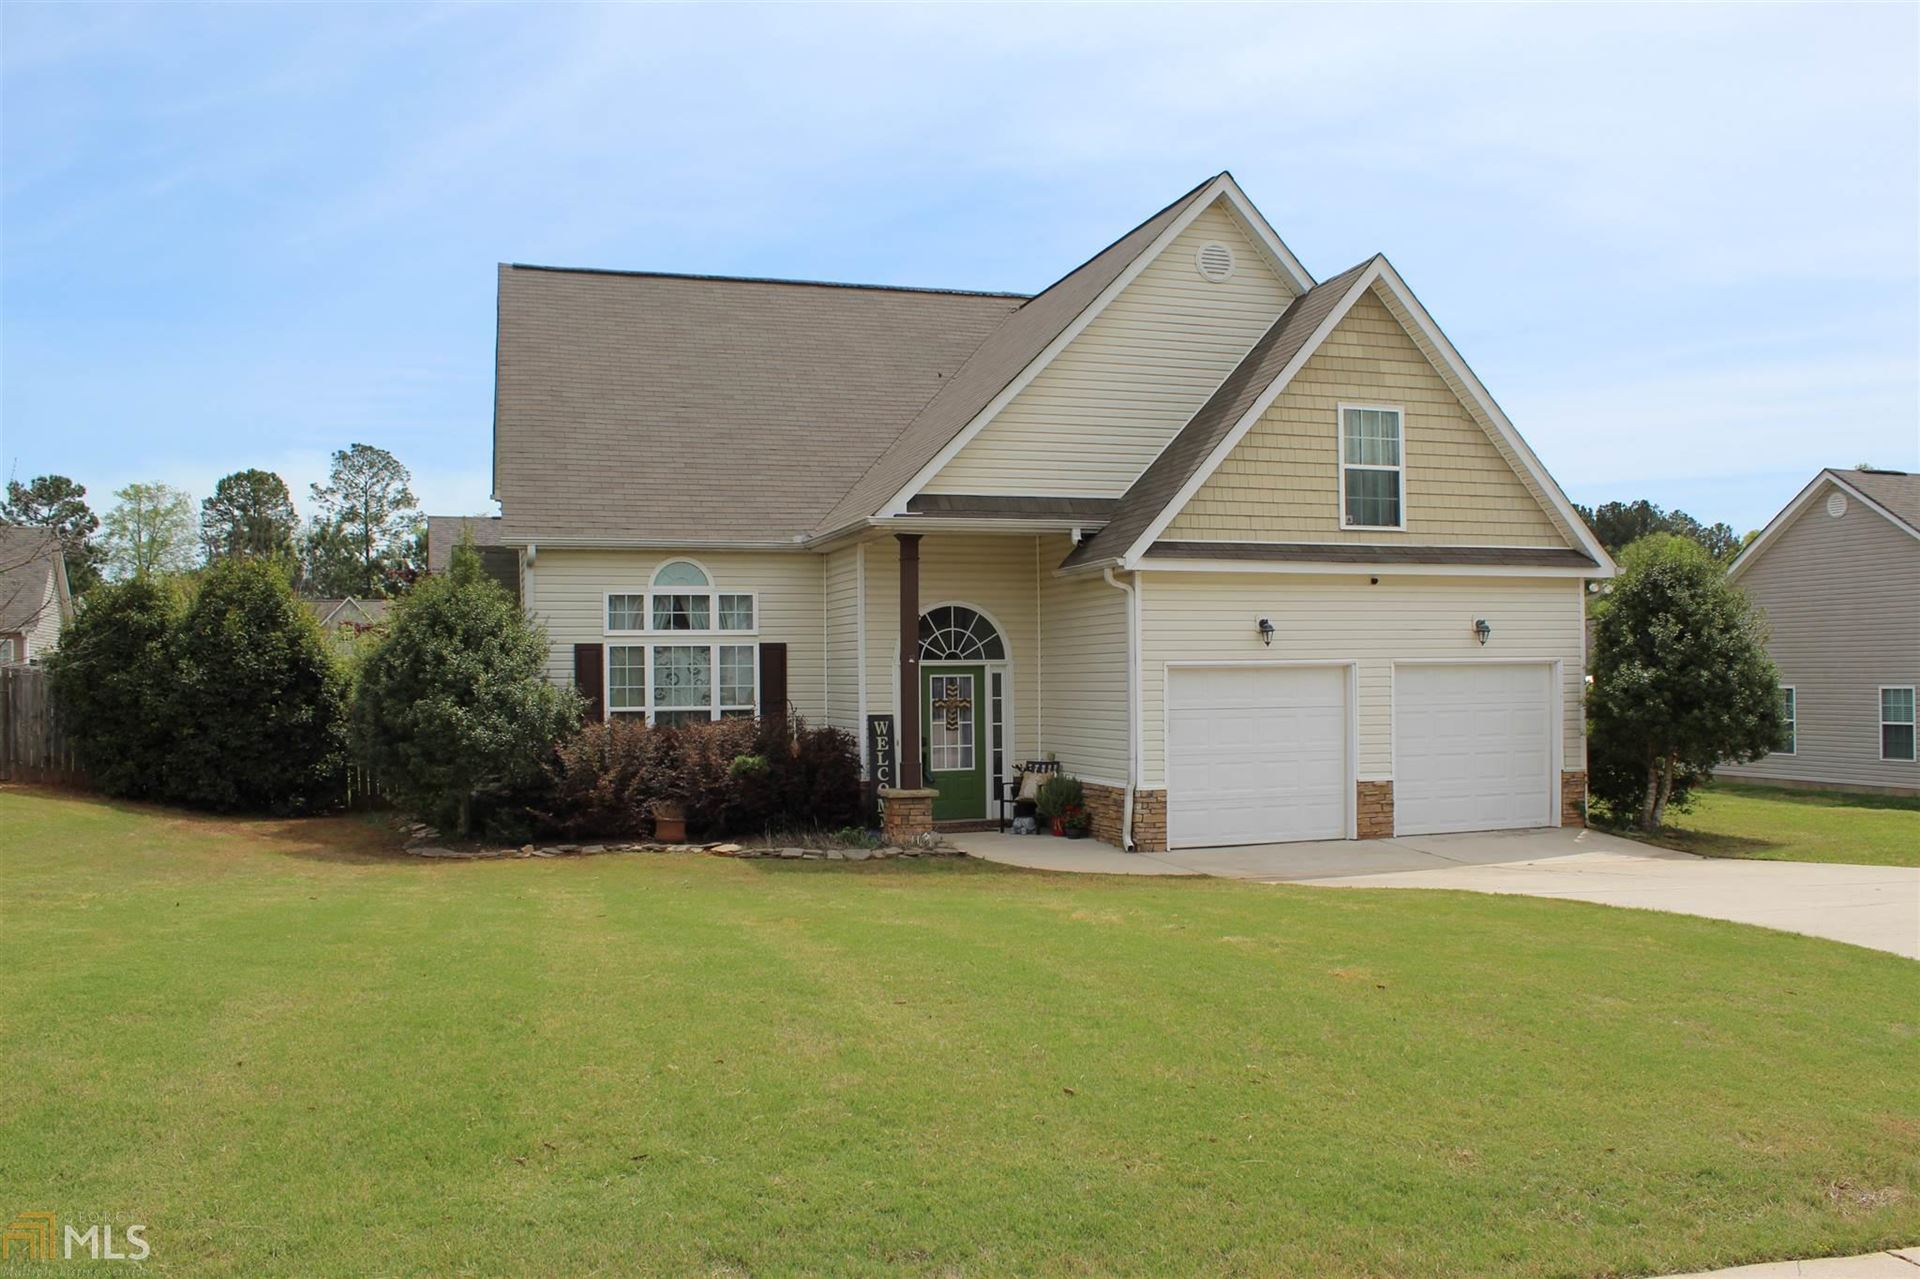 106 Churchill Dr, LaGrange, GA 30240 - #: 8961482